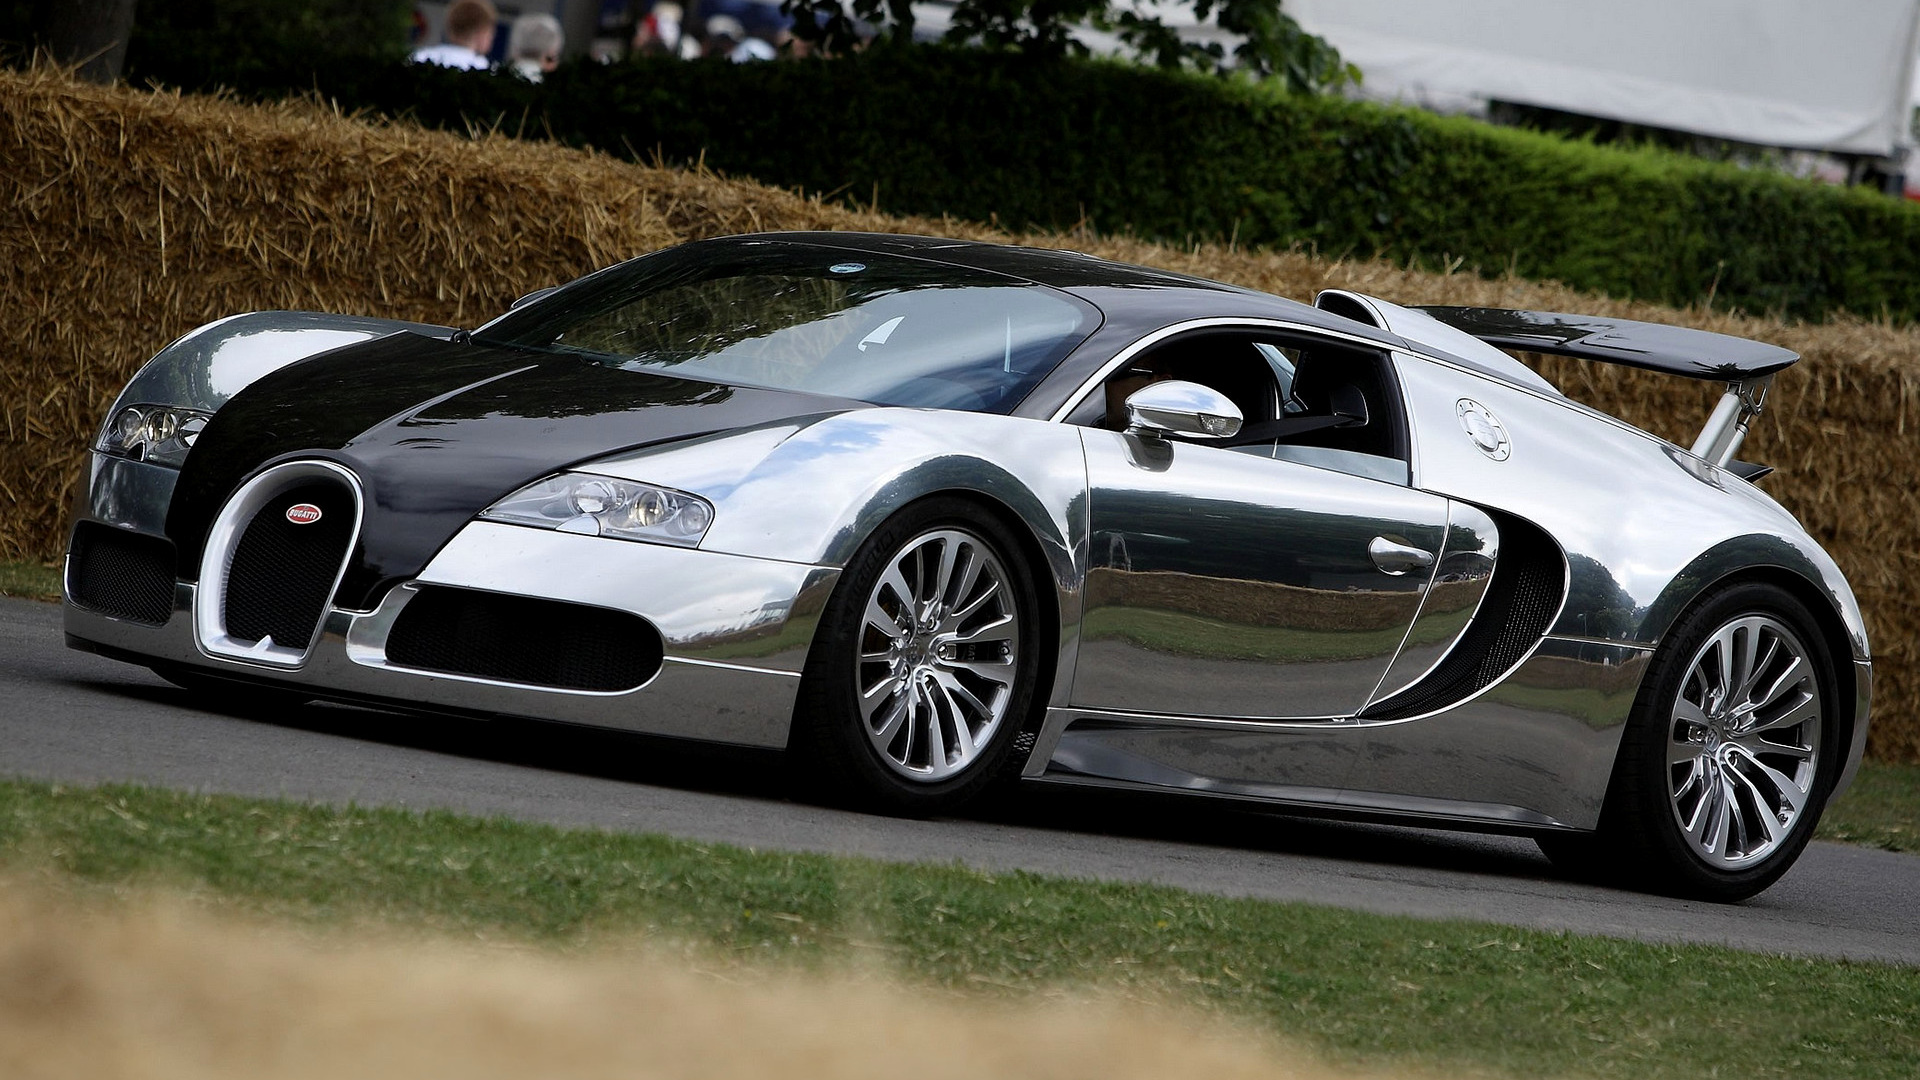 2019 Bugatti Veyron Pur Sang photo - 3